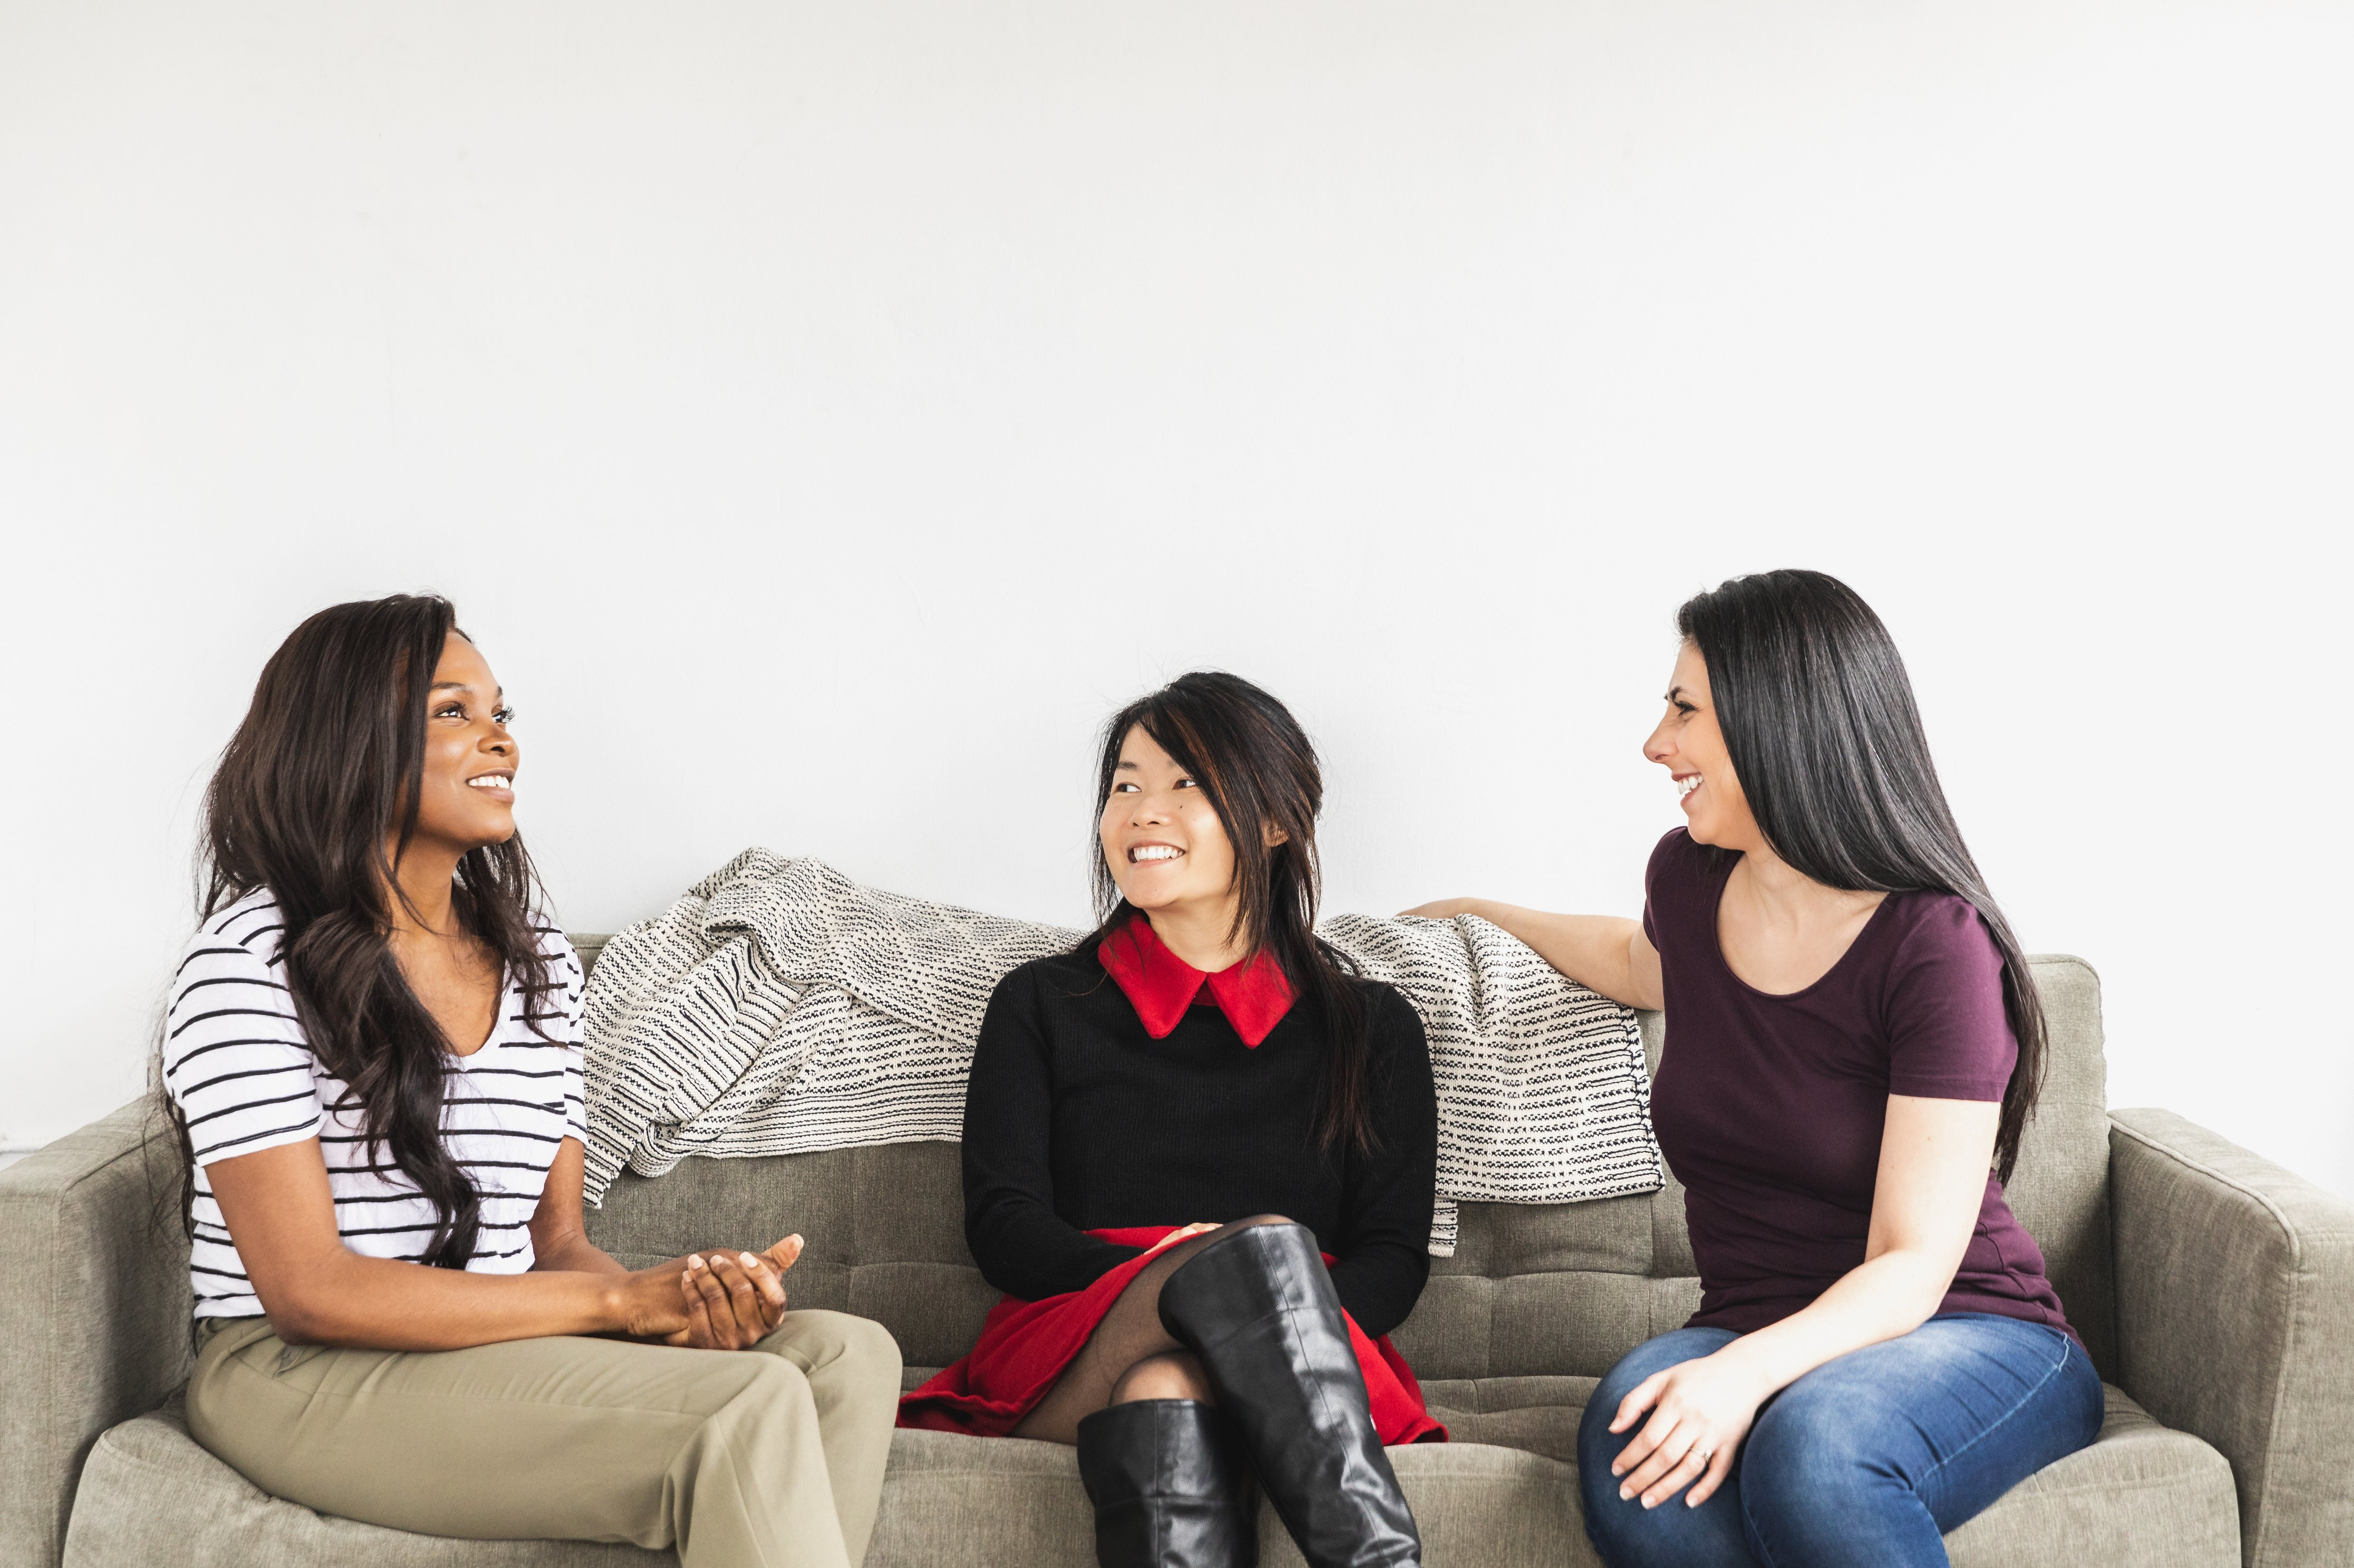 three women speaking to one another on a gray sofa